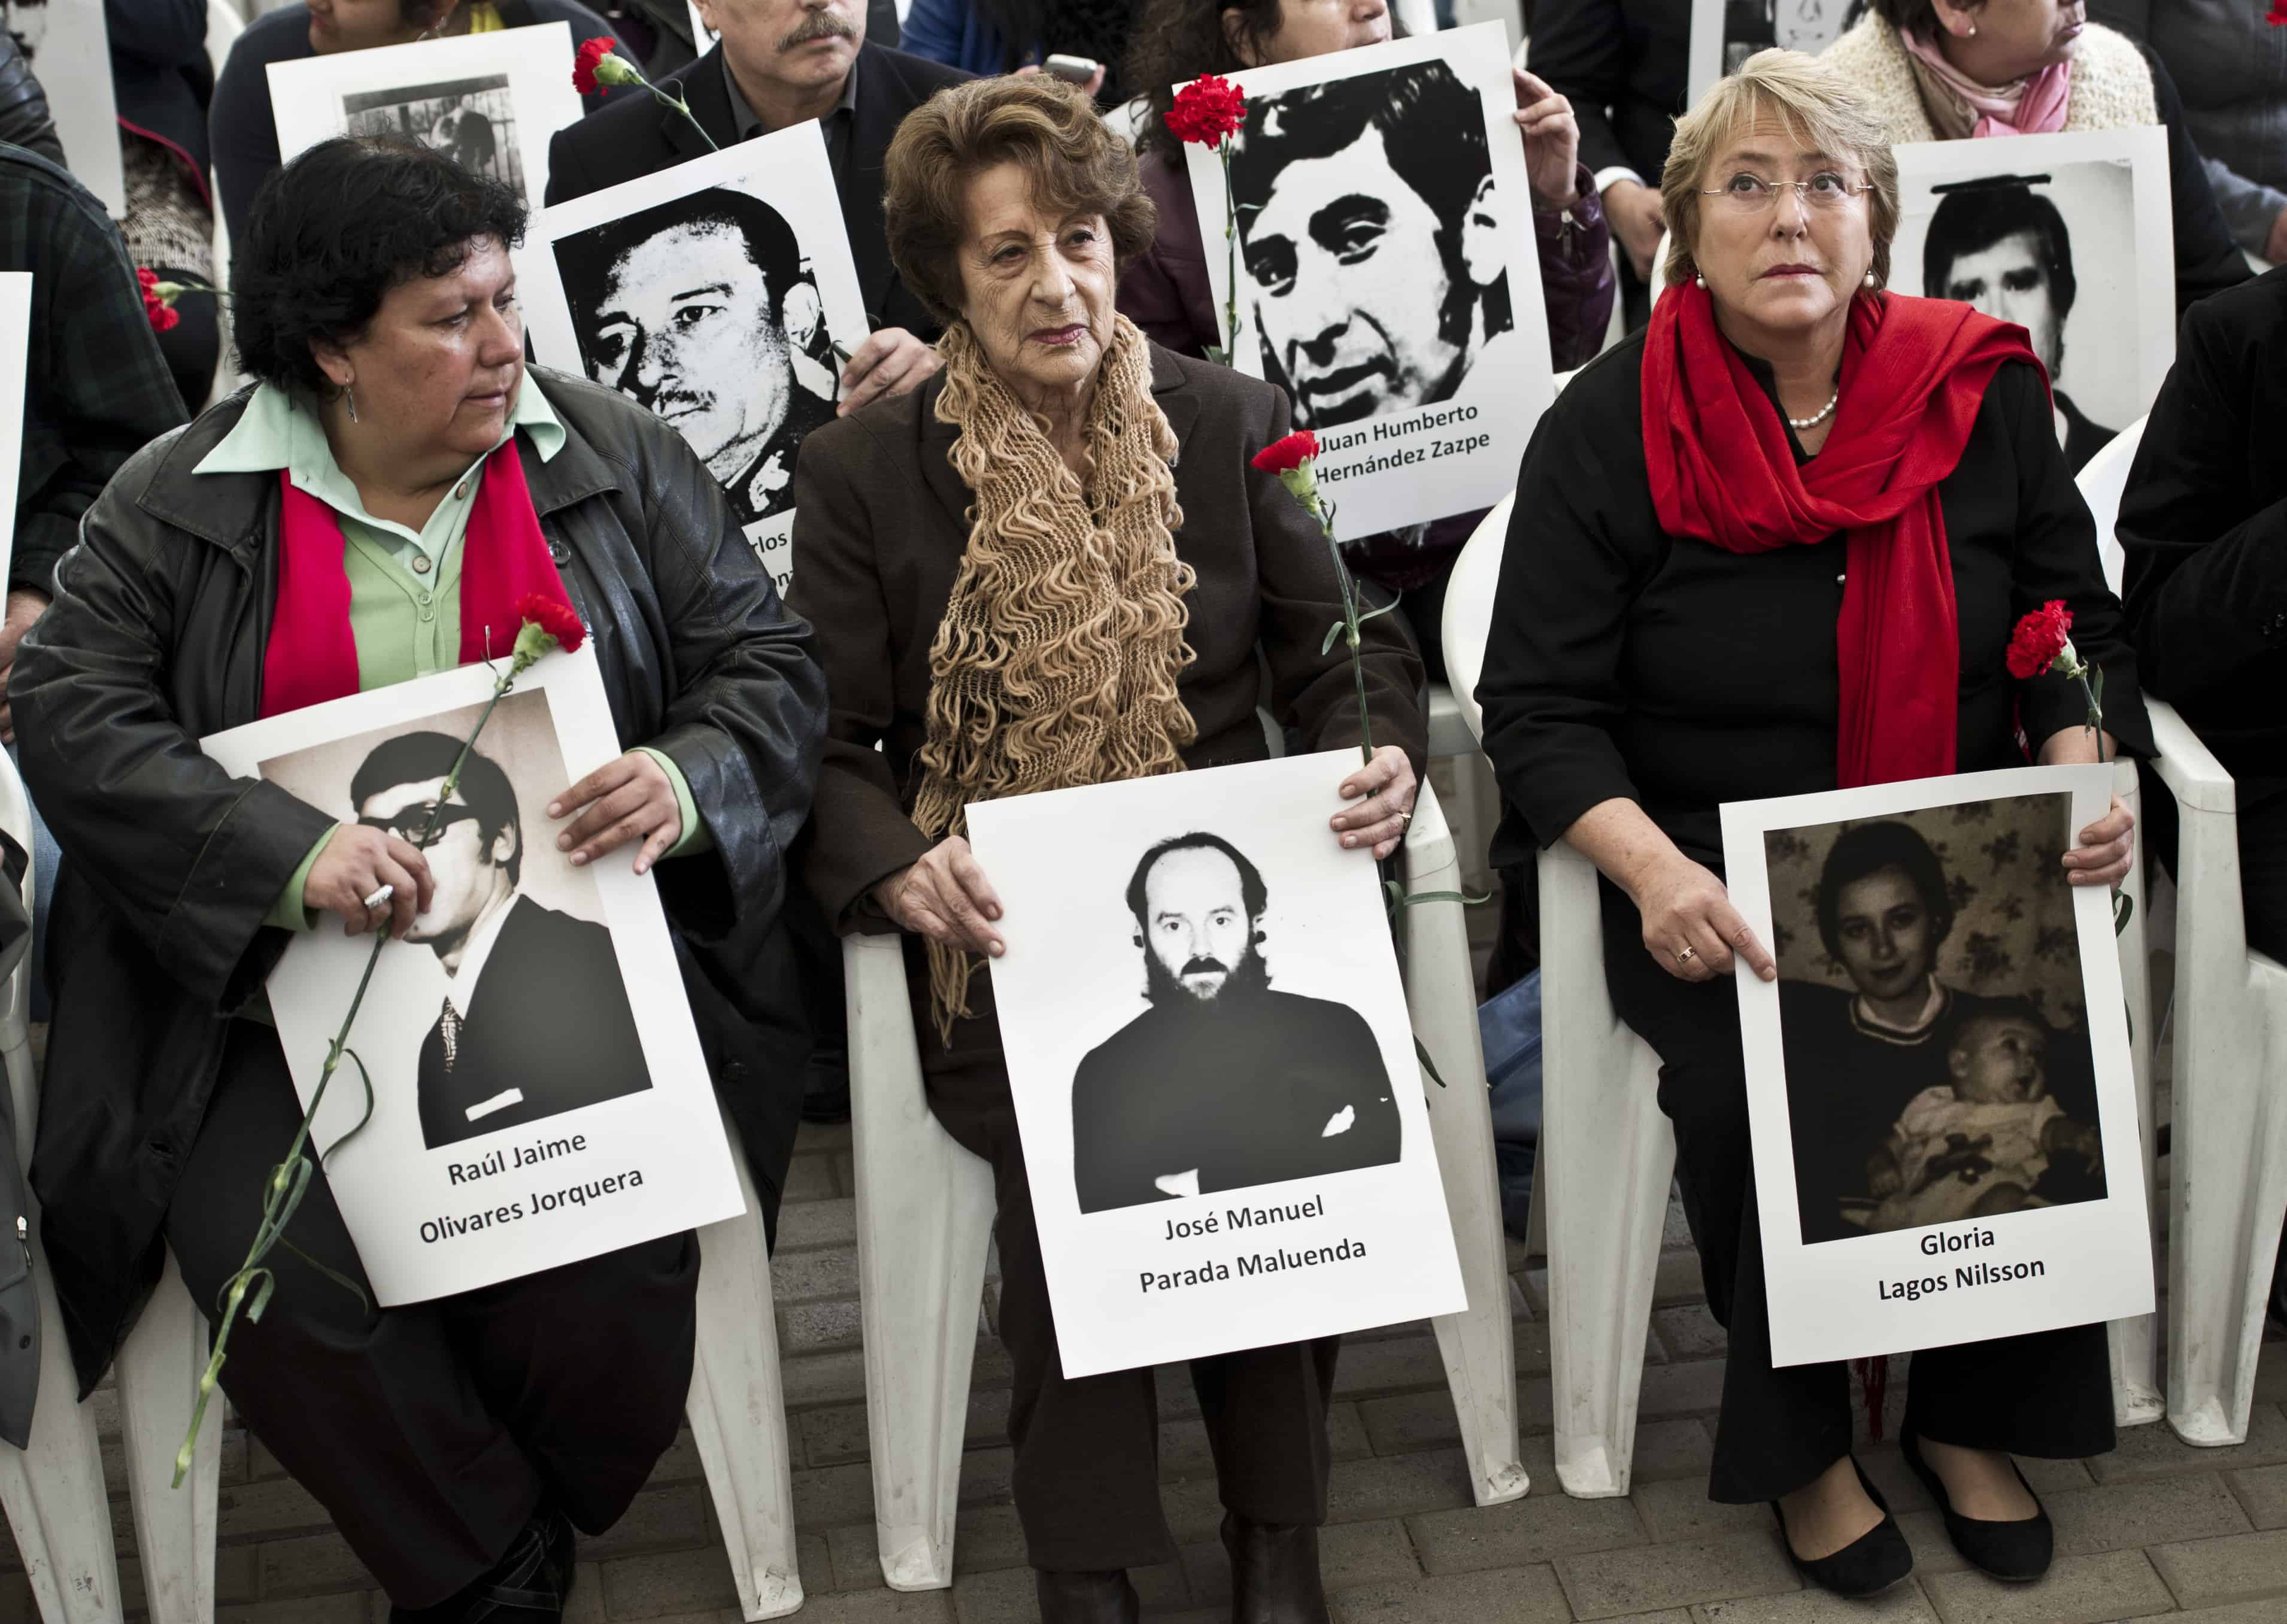 Chile's former President Michelle Bachelet, right, her mother Angela Jeria, center, and Lorena Pizarro, president of the Association of Relatives of the Detained and Disappeared, left, participate in a ceremony at Villa Grimaldi, which was used as a detention and torture center during the dictatorship of Augusto Pinochet, in Santiago, on Sept. 10, 2013.